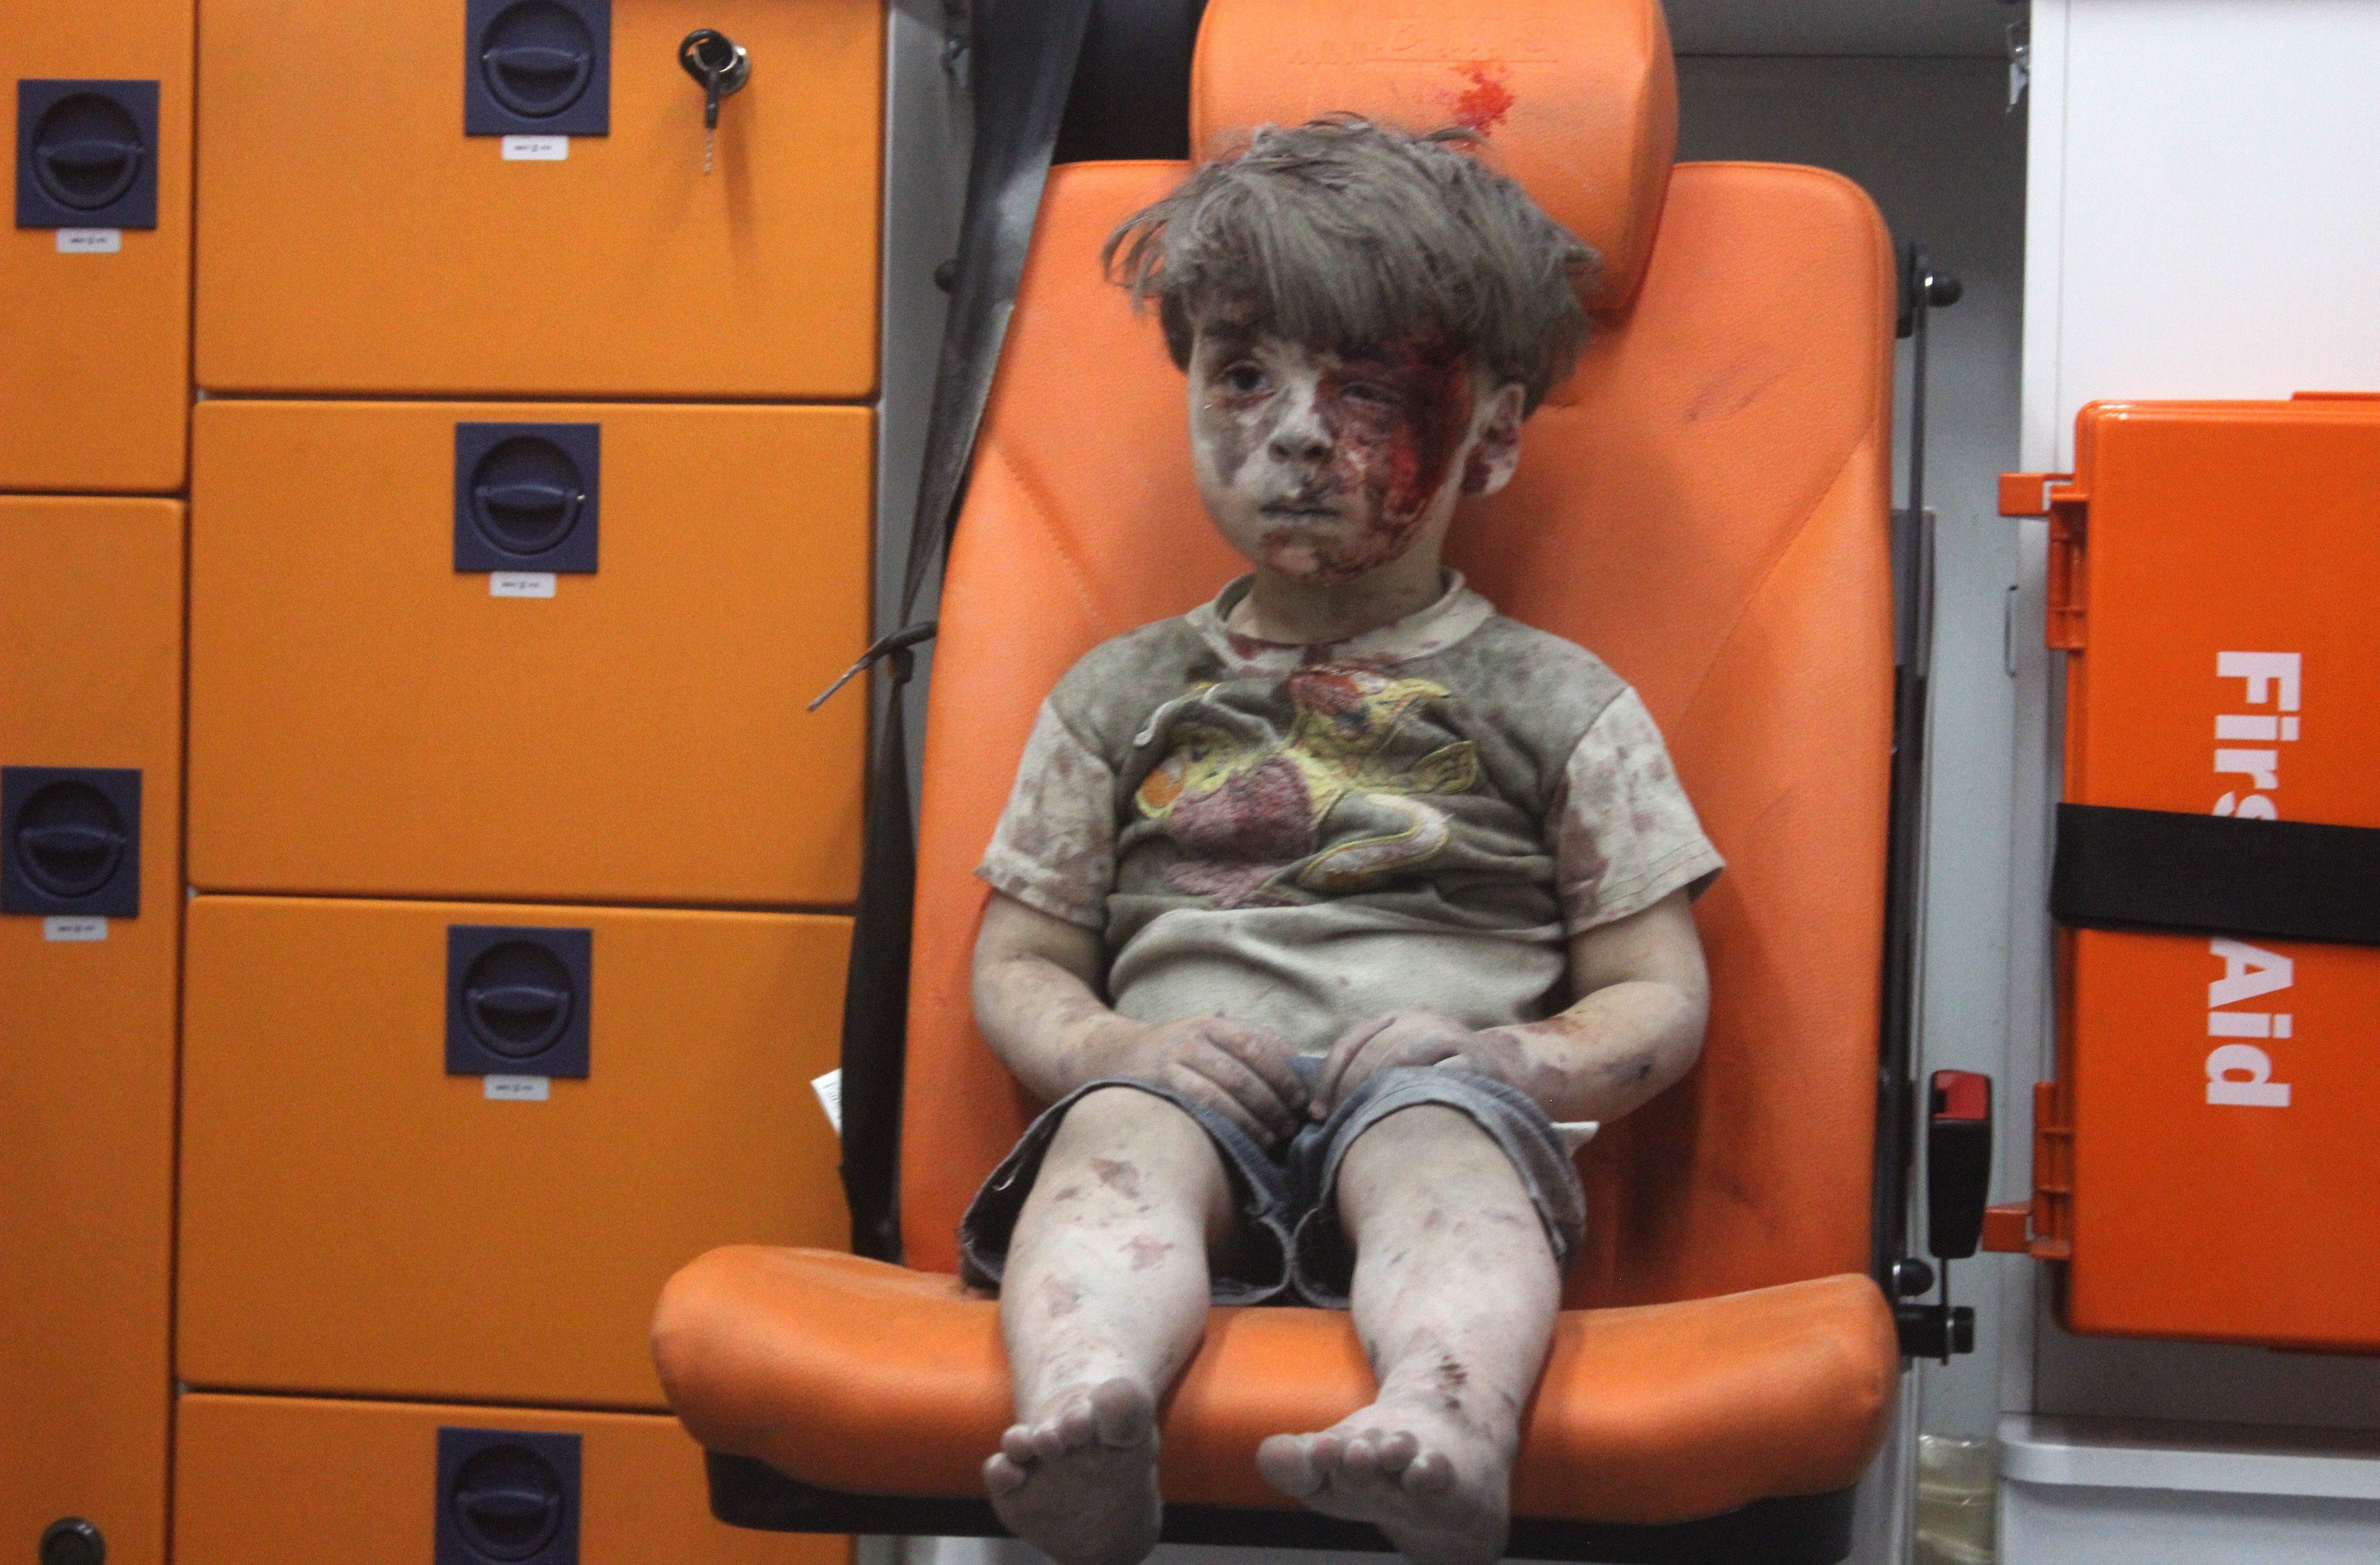 Omran Daqneesh, 5, was pictured in the back of an ambulance after being pulled from rubble, with an expression...